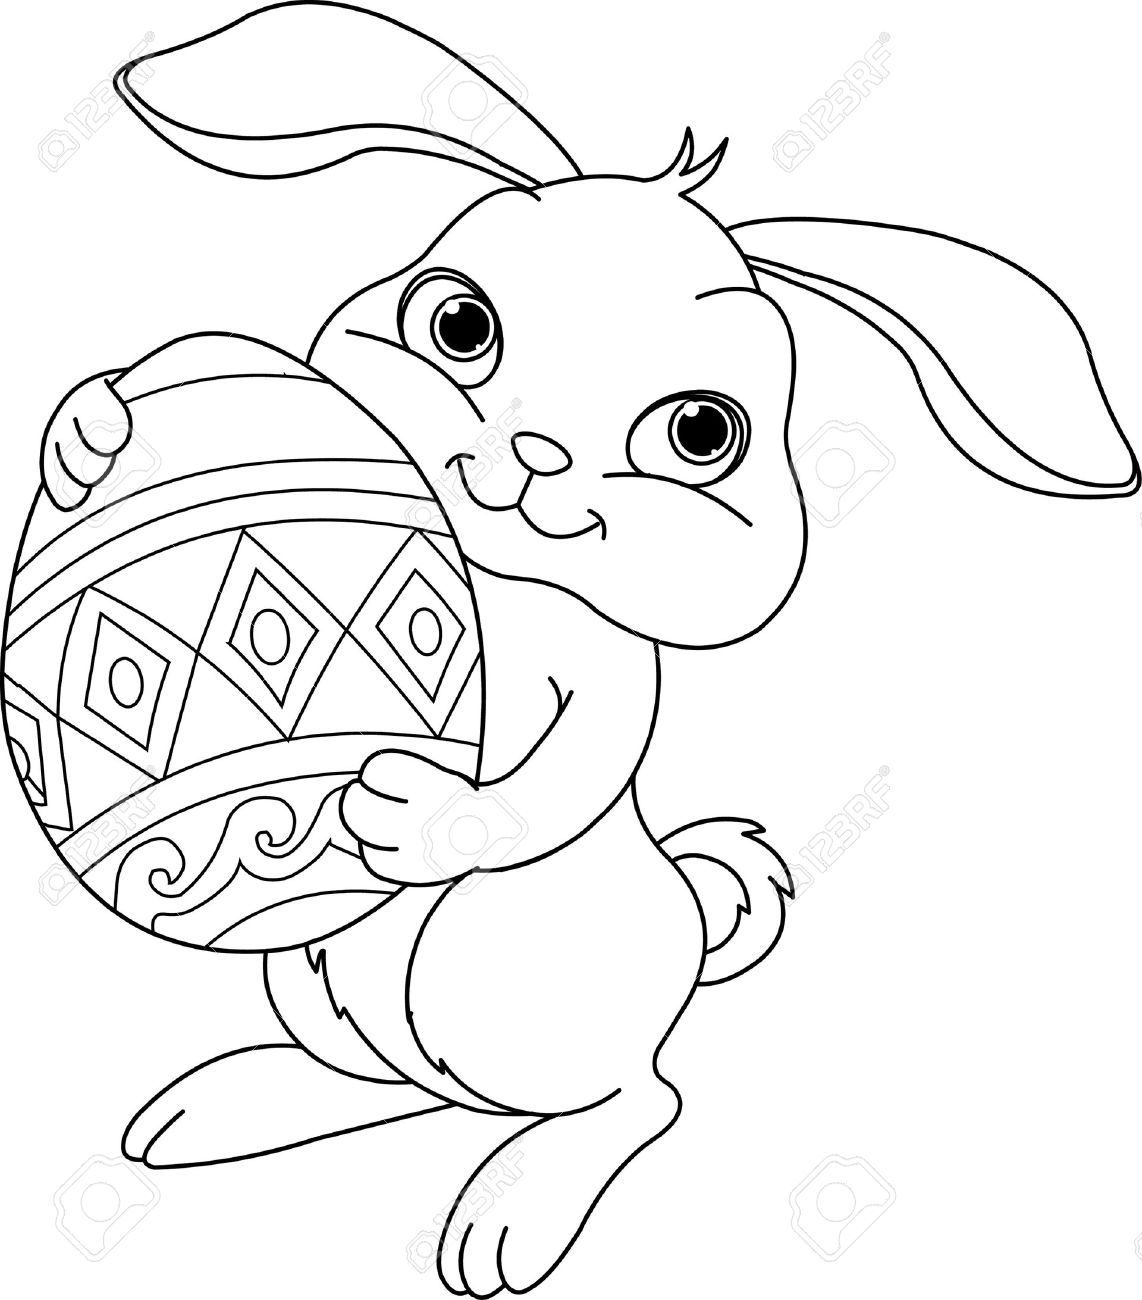 1142x1300 Fresh Bunny Clipart Black And White Design